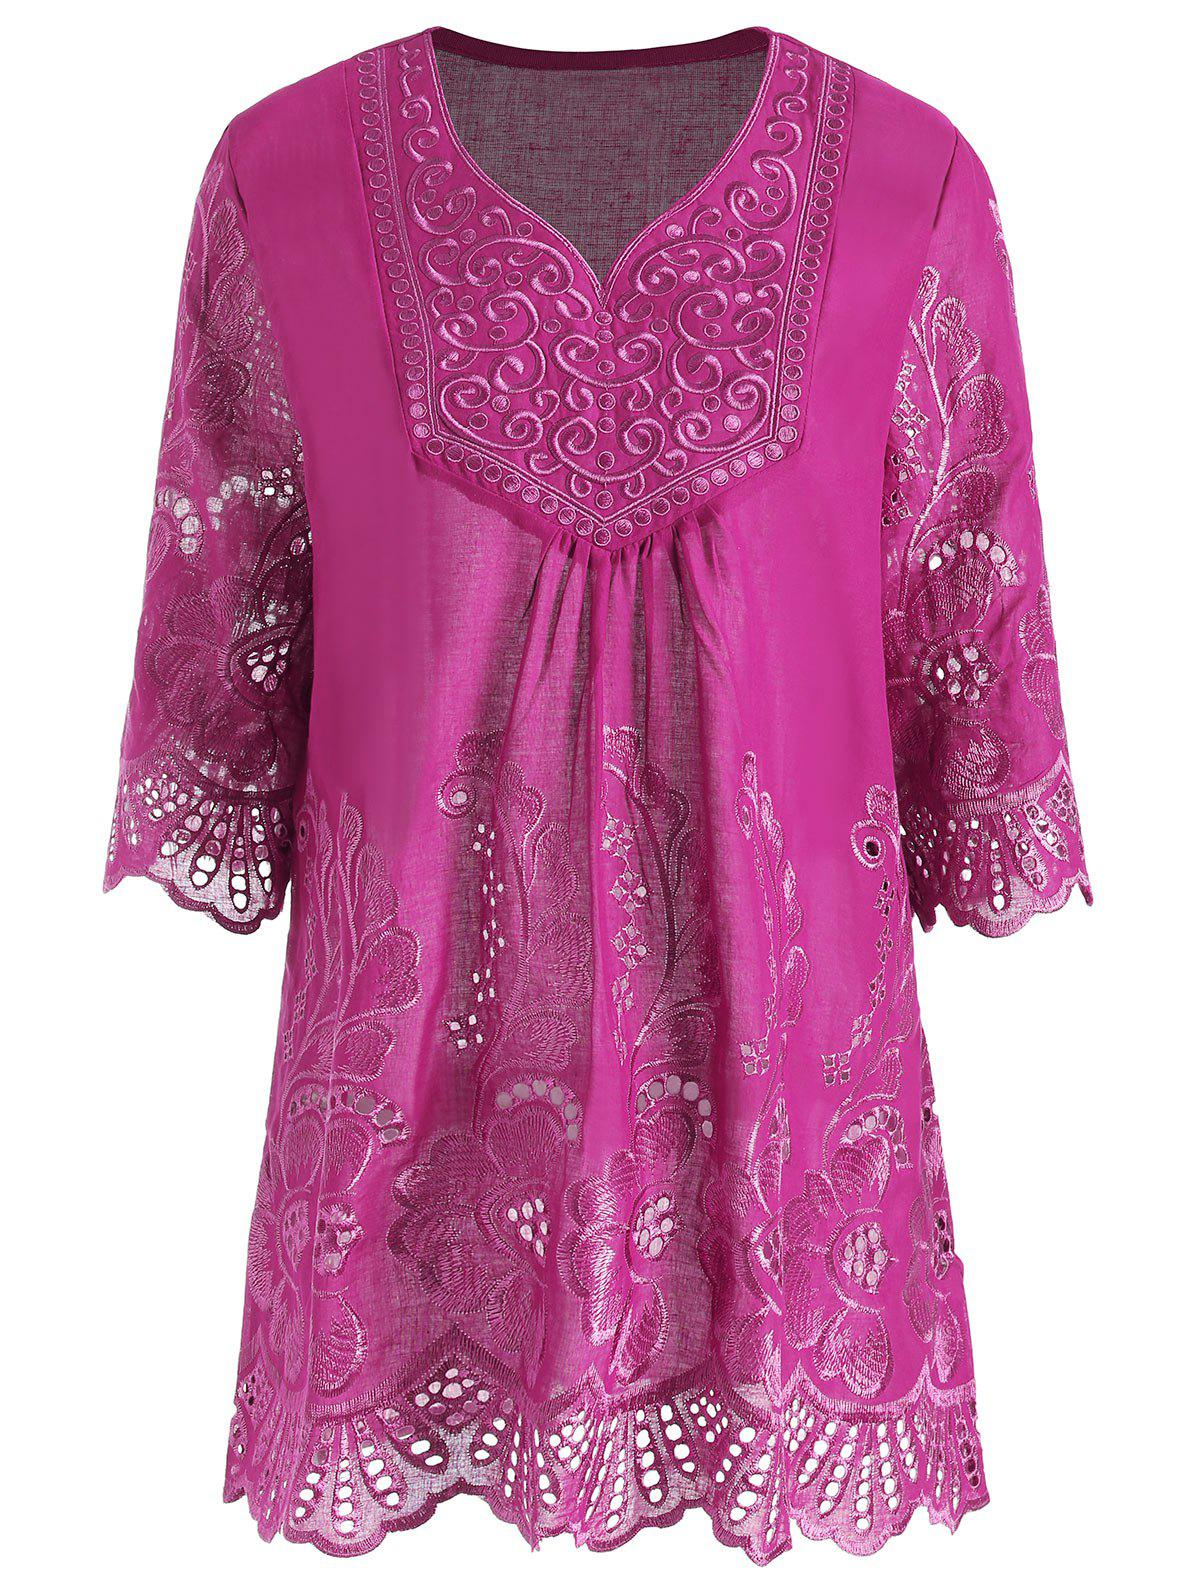 Plus Size V Neck Embroidered Tunic TopWOMEN<br><br>Size: 3XL; Color: ROSE MADDER; Material: Polyester; Shirt Length: Long; Sleeve Length: Three Quarter; Collar: V-Neck; Style: Casual; Season: Summer; Pattern Type: Solid; Weight: 0.2200kg; Package Contents: 1 x Top;